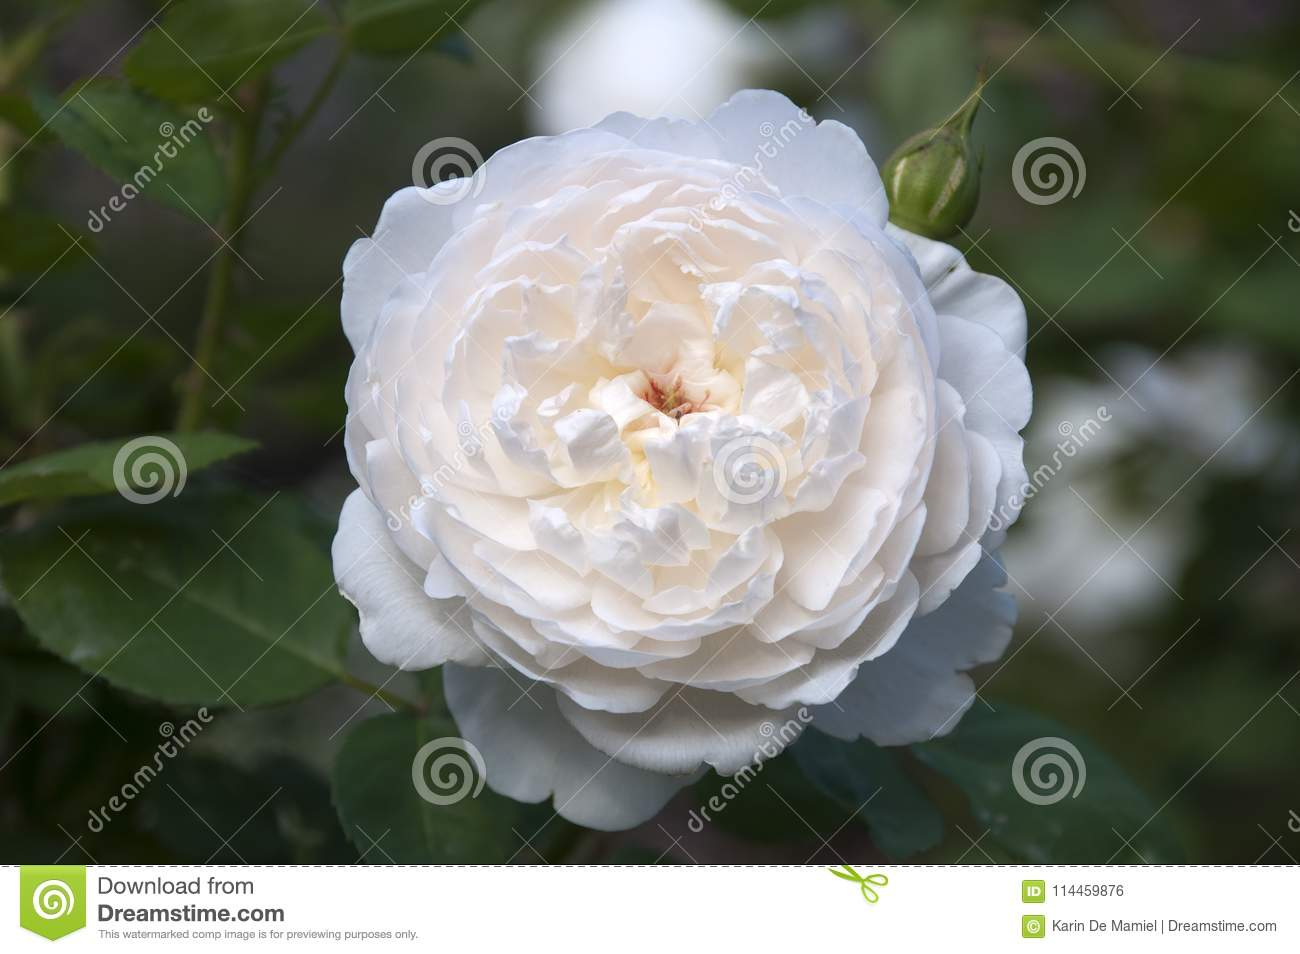 Glamis Castle A Rose With White Flowers Stock Photo Image Of